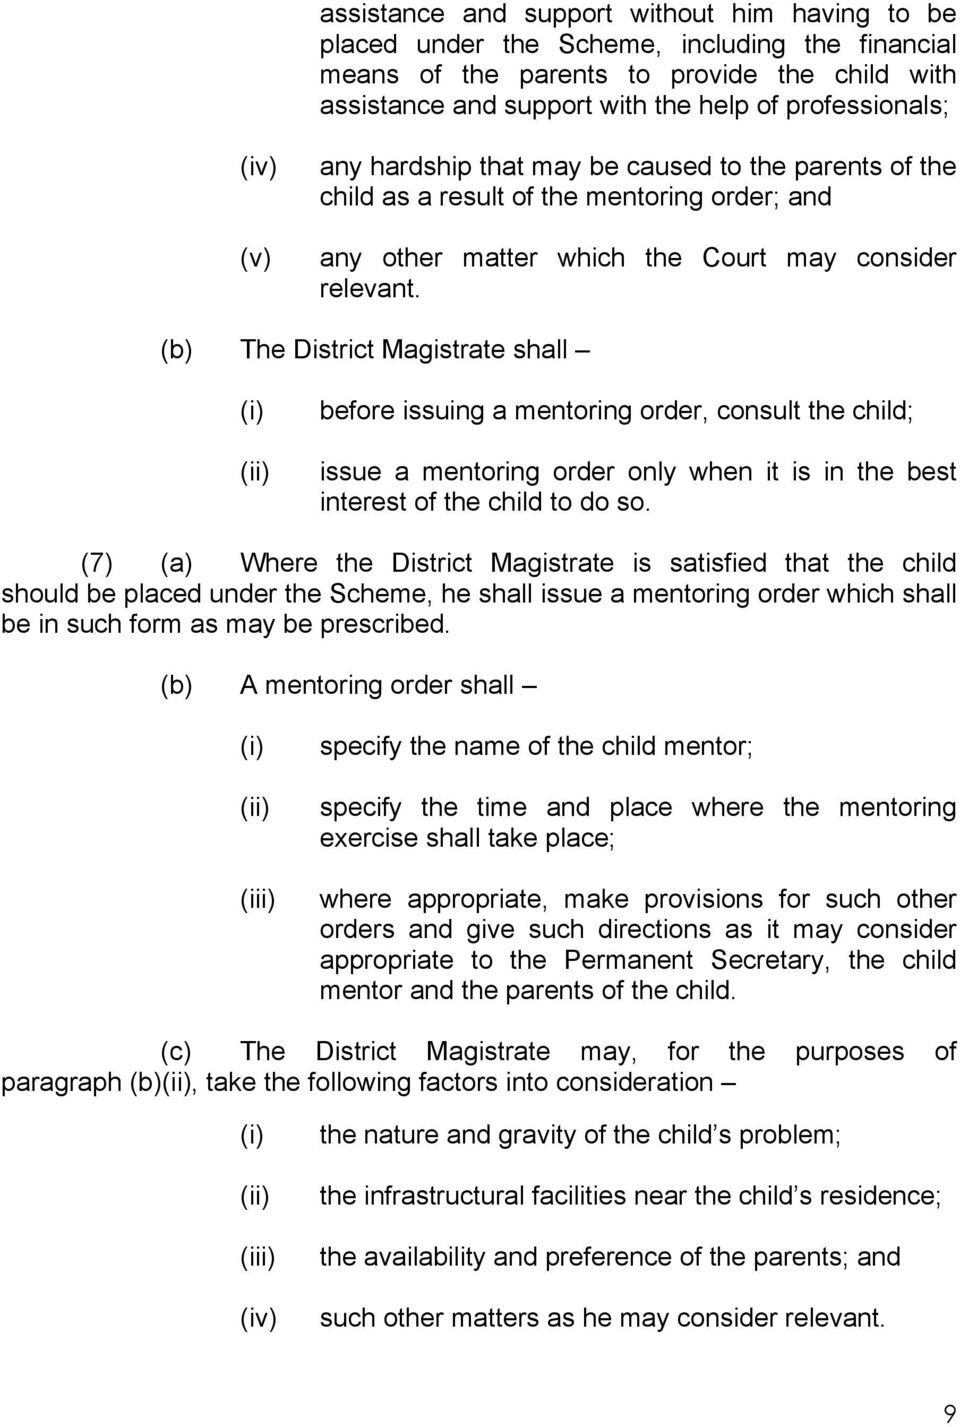 The District Magistrate shall before issuing a mentoring order, consult the child; issue a mentoring order only when it is in the best interest of the child to do so.